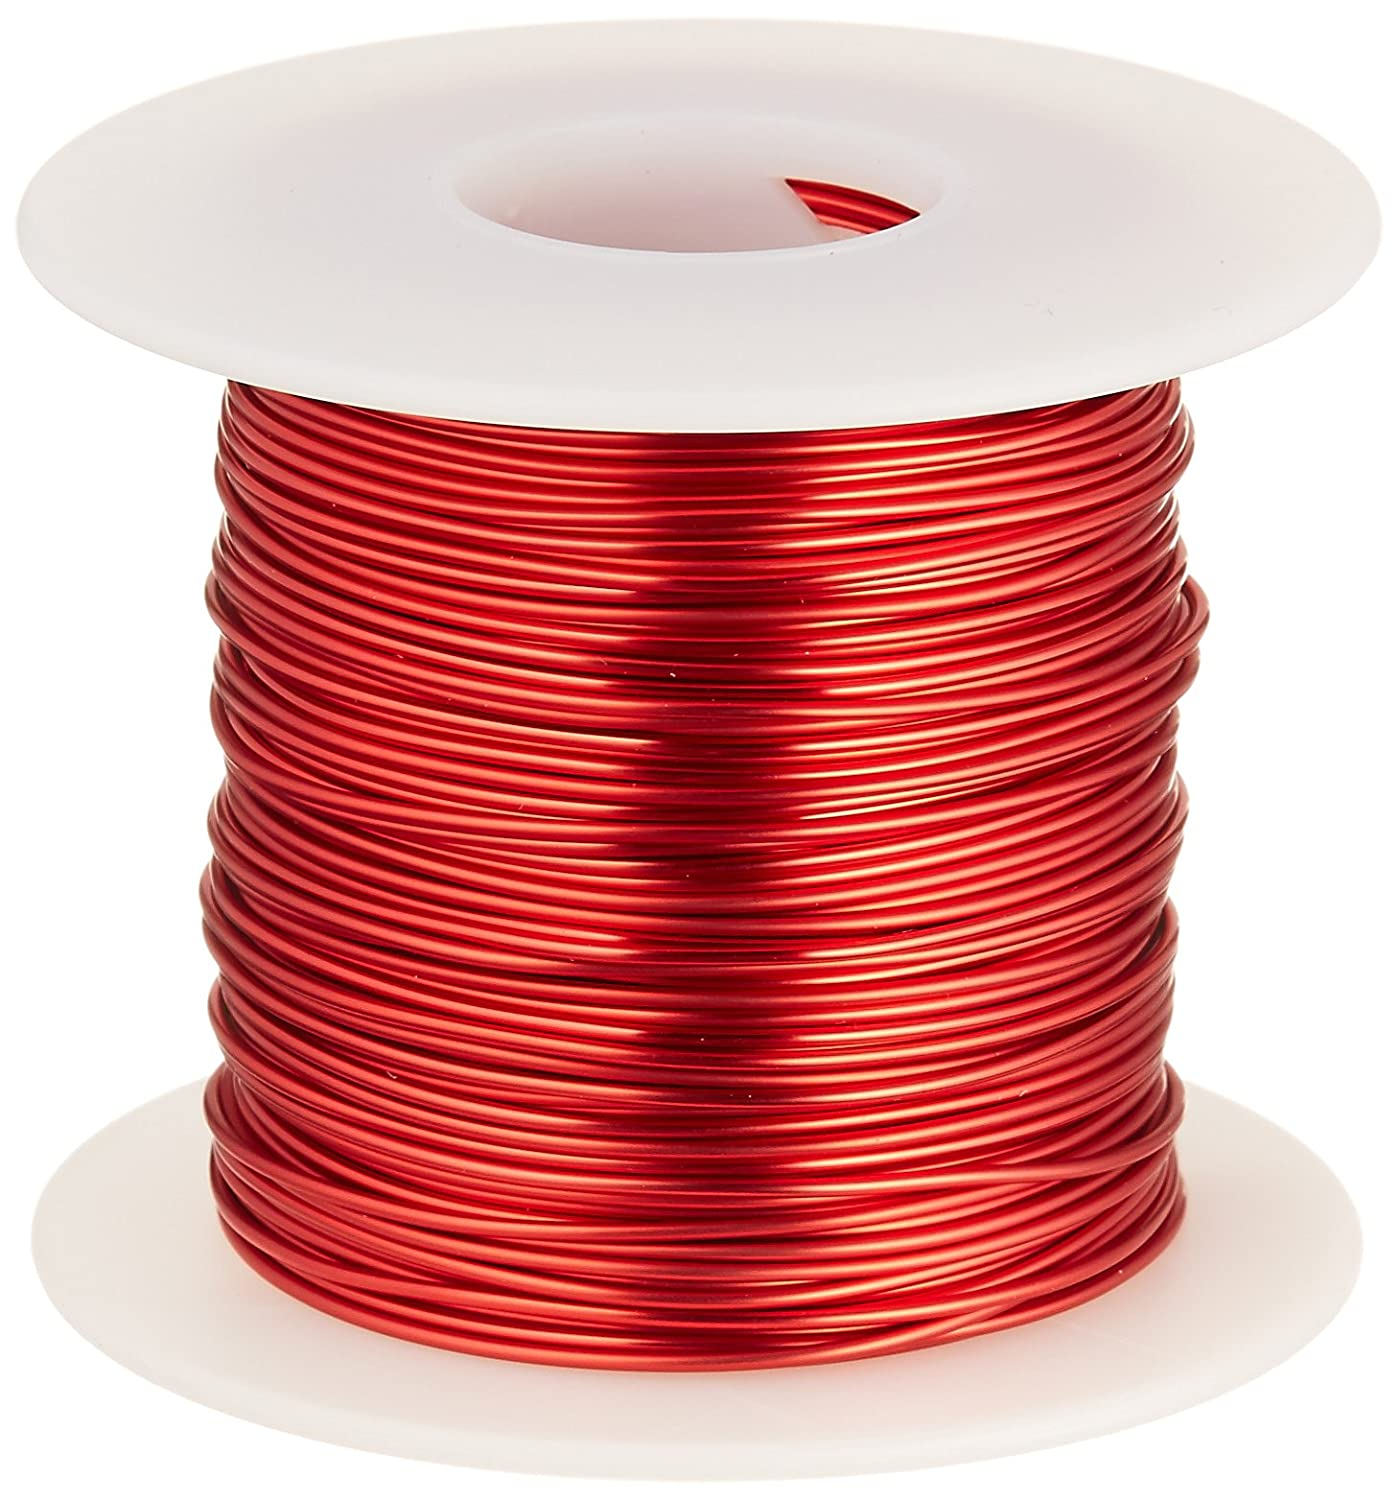 Remington Industries 18SNSP Magnet Wire, Enameled Copper Wire, 18 ...